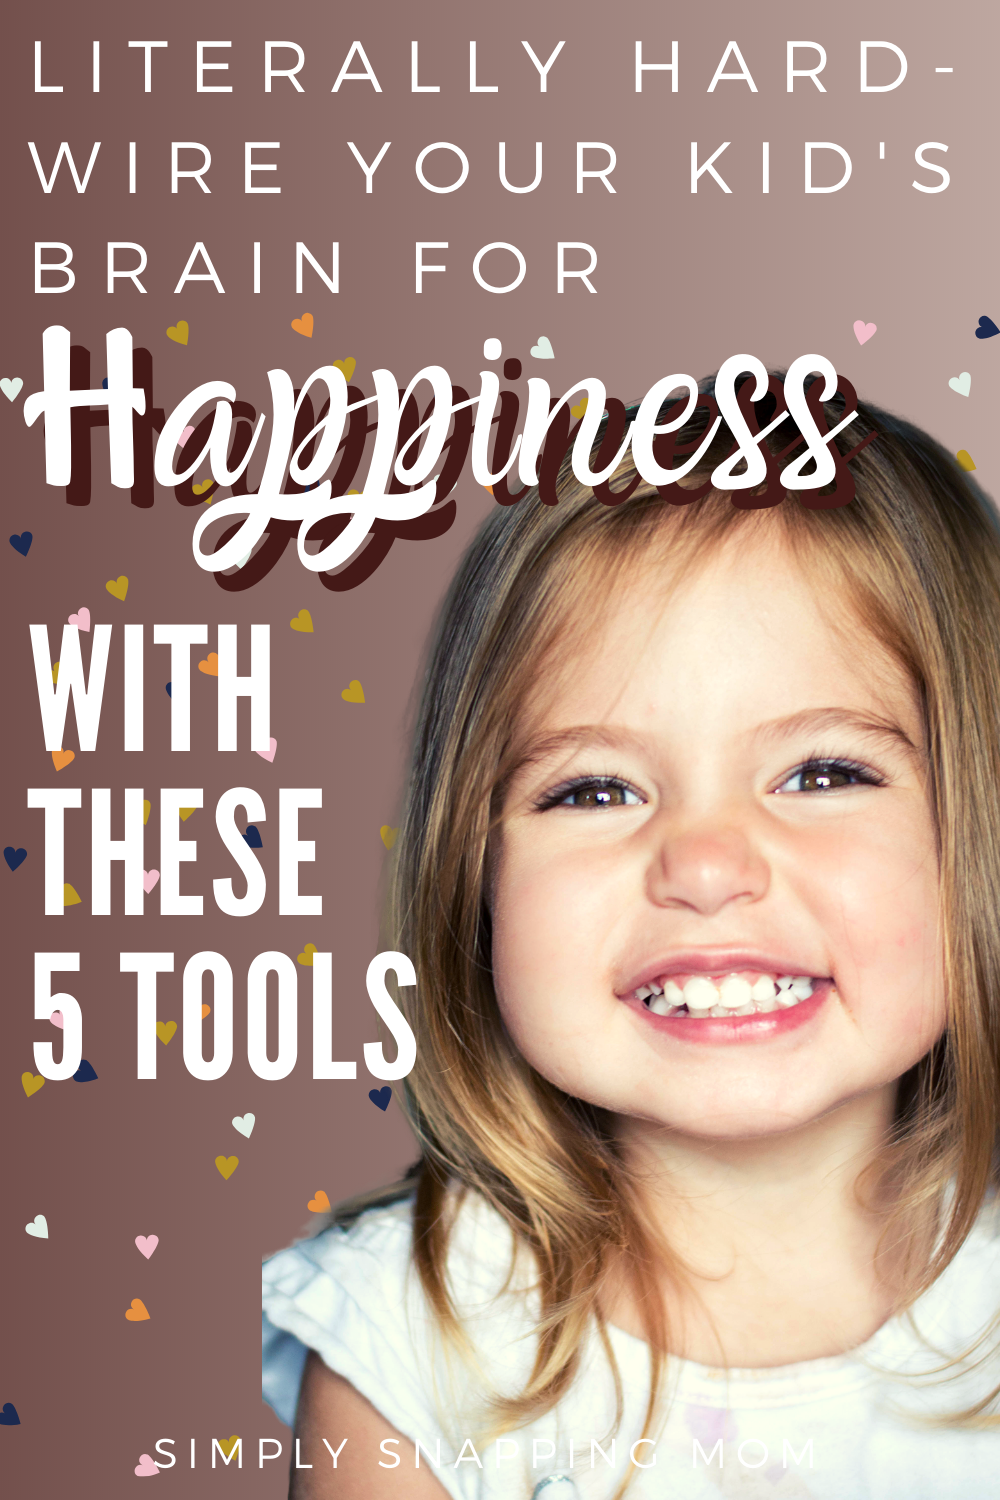 Photo of Raise happy kids who's brains are literally wired for happiness pathways by doin…